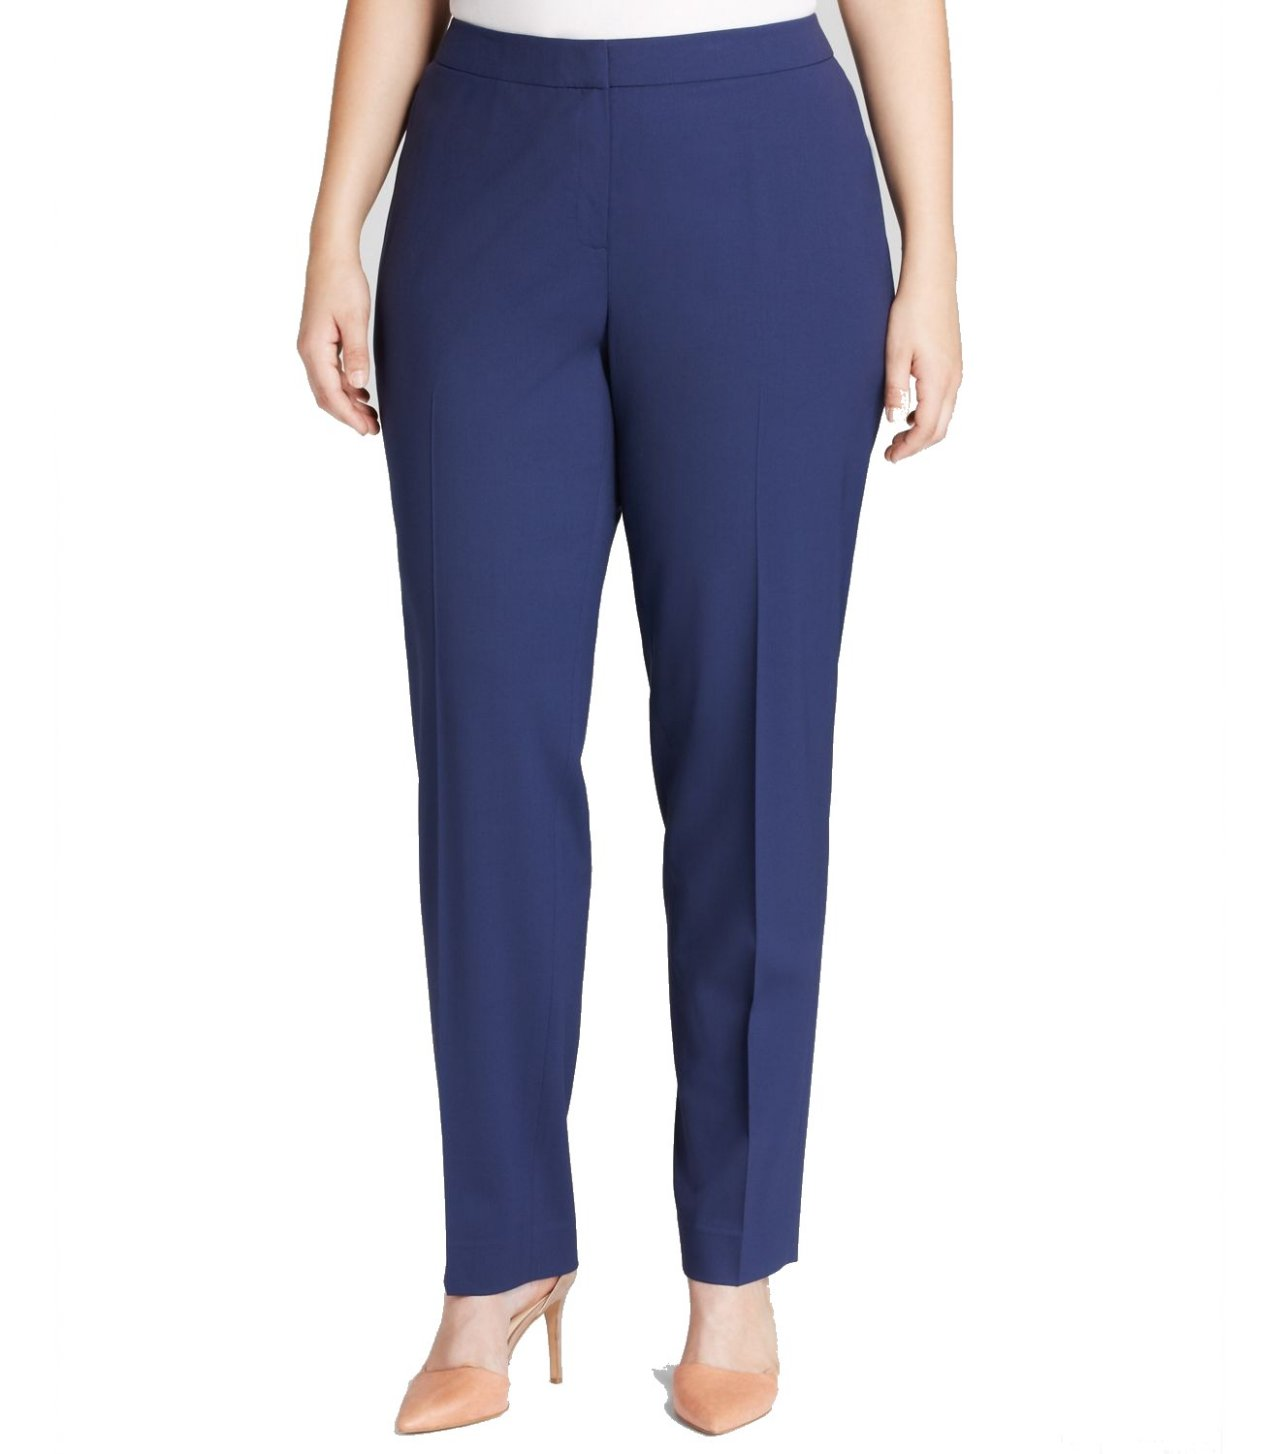 Women&39S Plus Size Navy Blue Dress Pants - Holiday Dresses